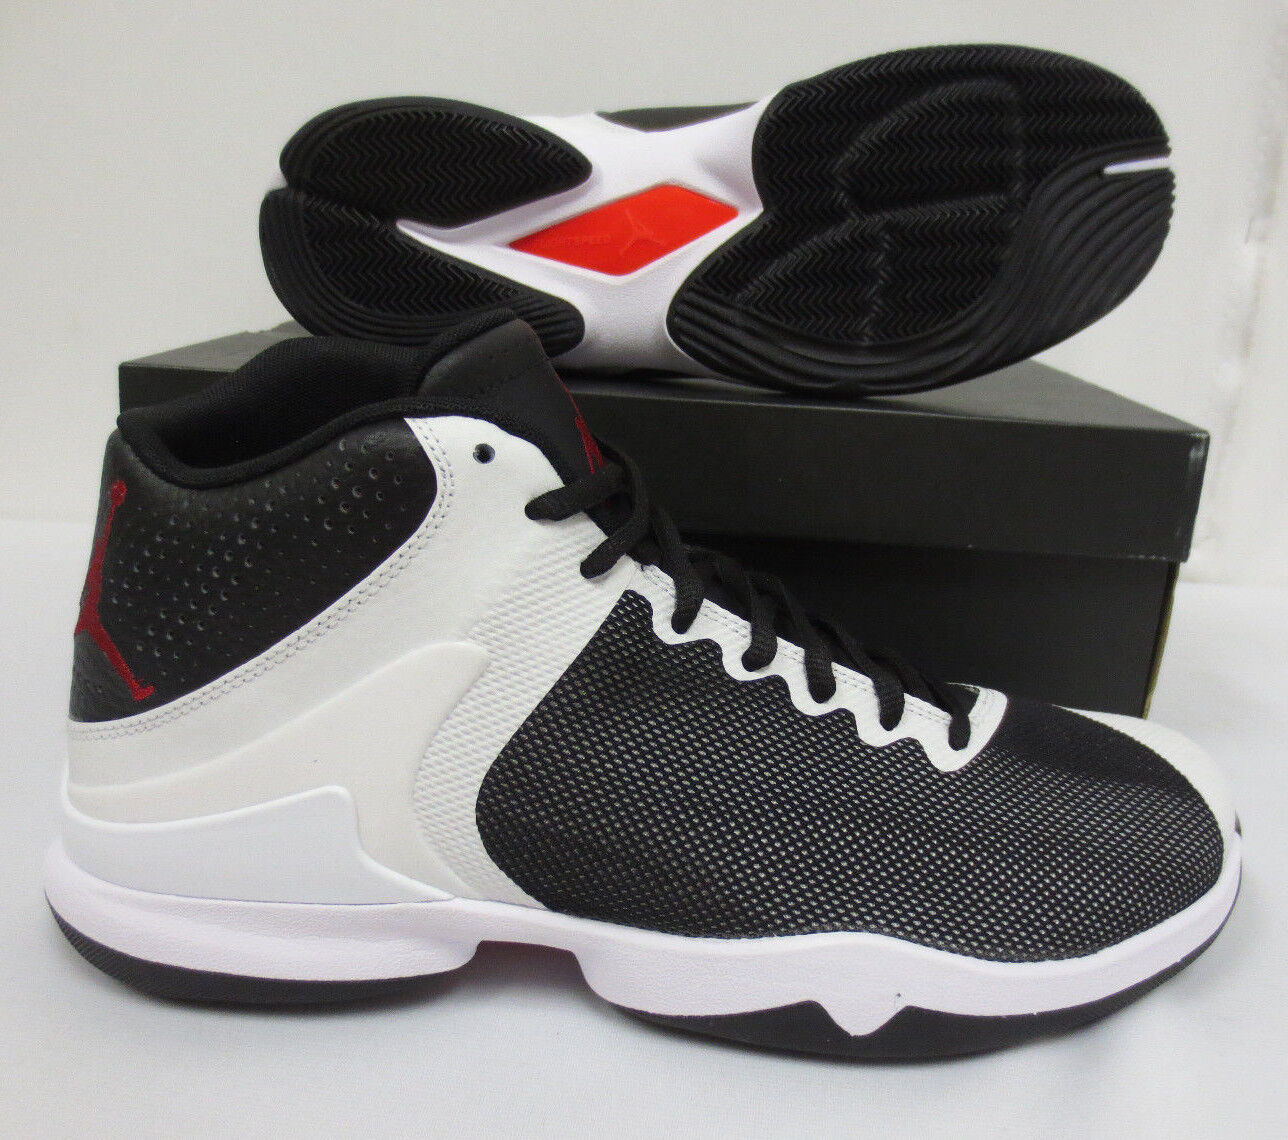 JORDAN SUPER.FLY 4 PO SIZE 10.5 SHOES MENS BASKETBALL RUNNING WORKOUT NEW COOL Wild casual shoes